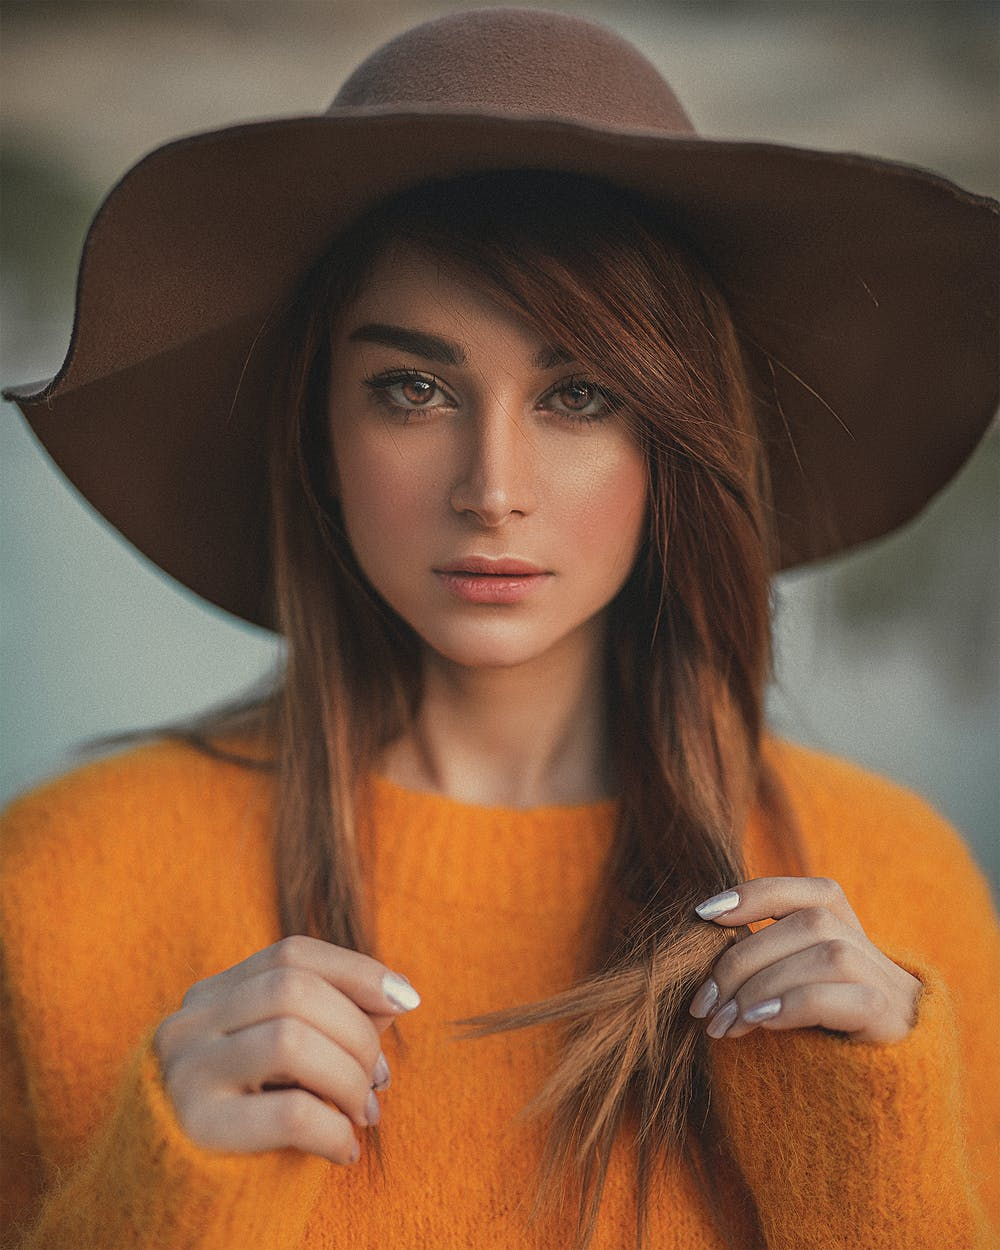 Woman wearing orange sweater | Photo: Pexels